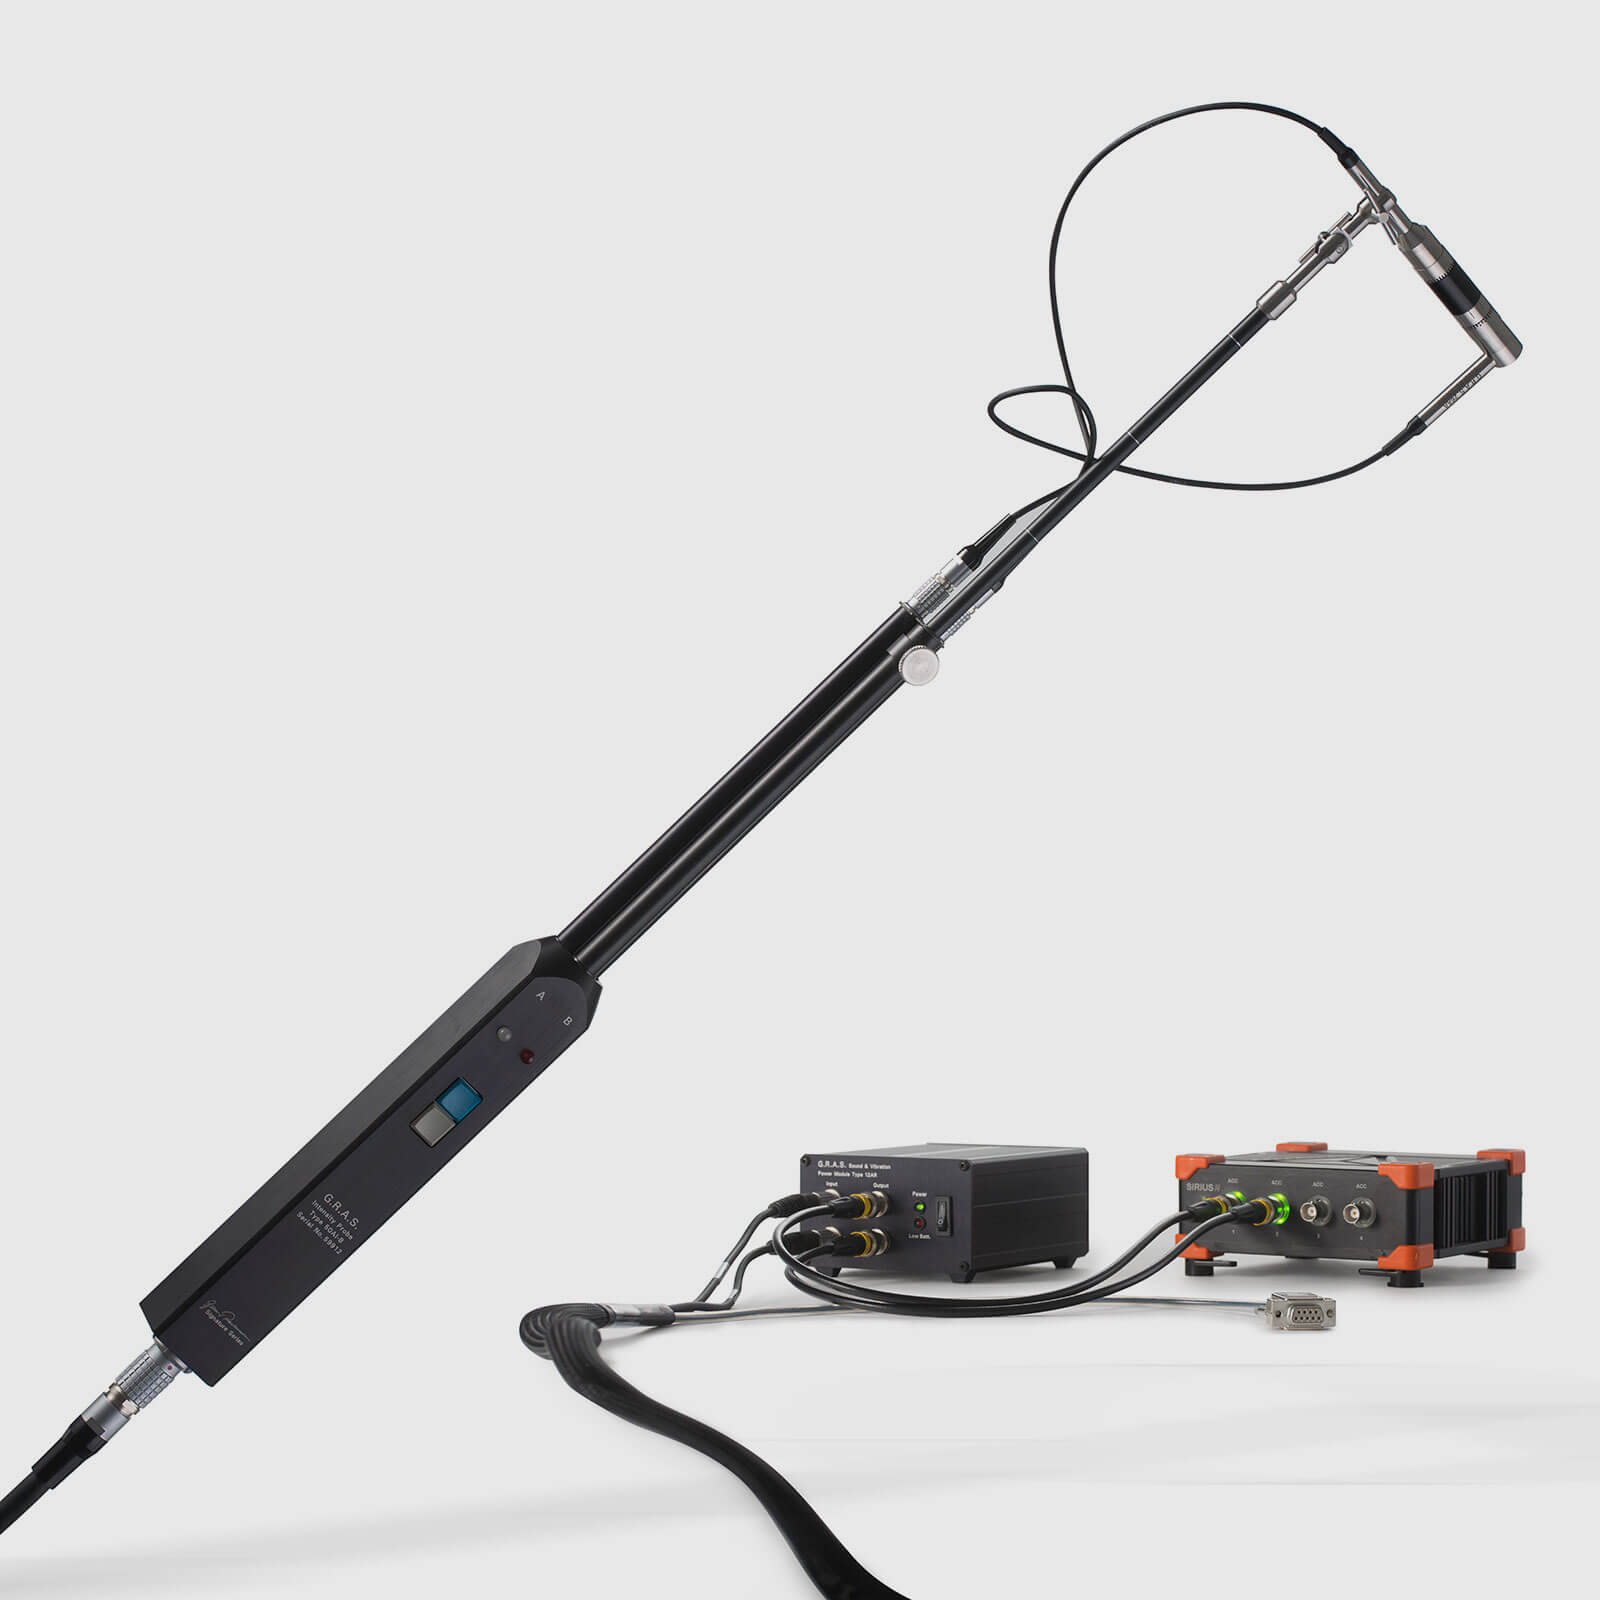 Portable & Adaptable Sound Intensity System